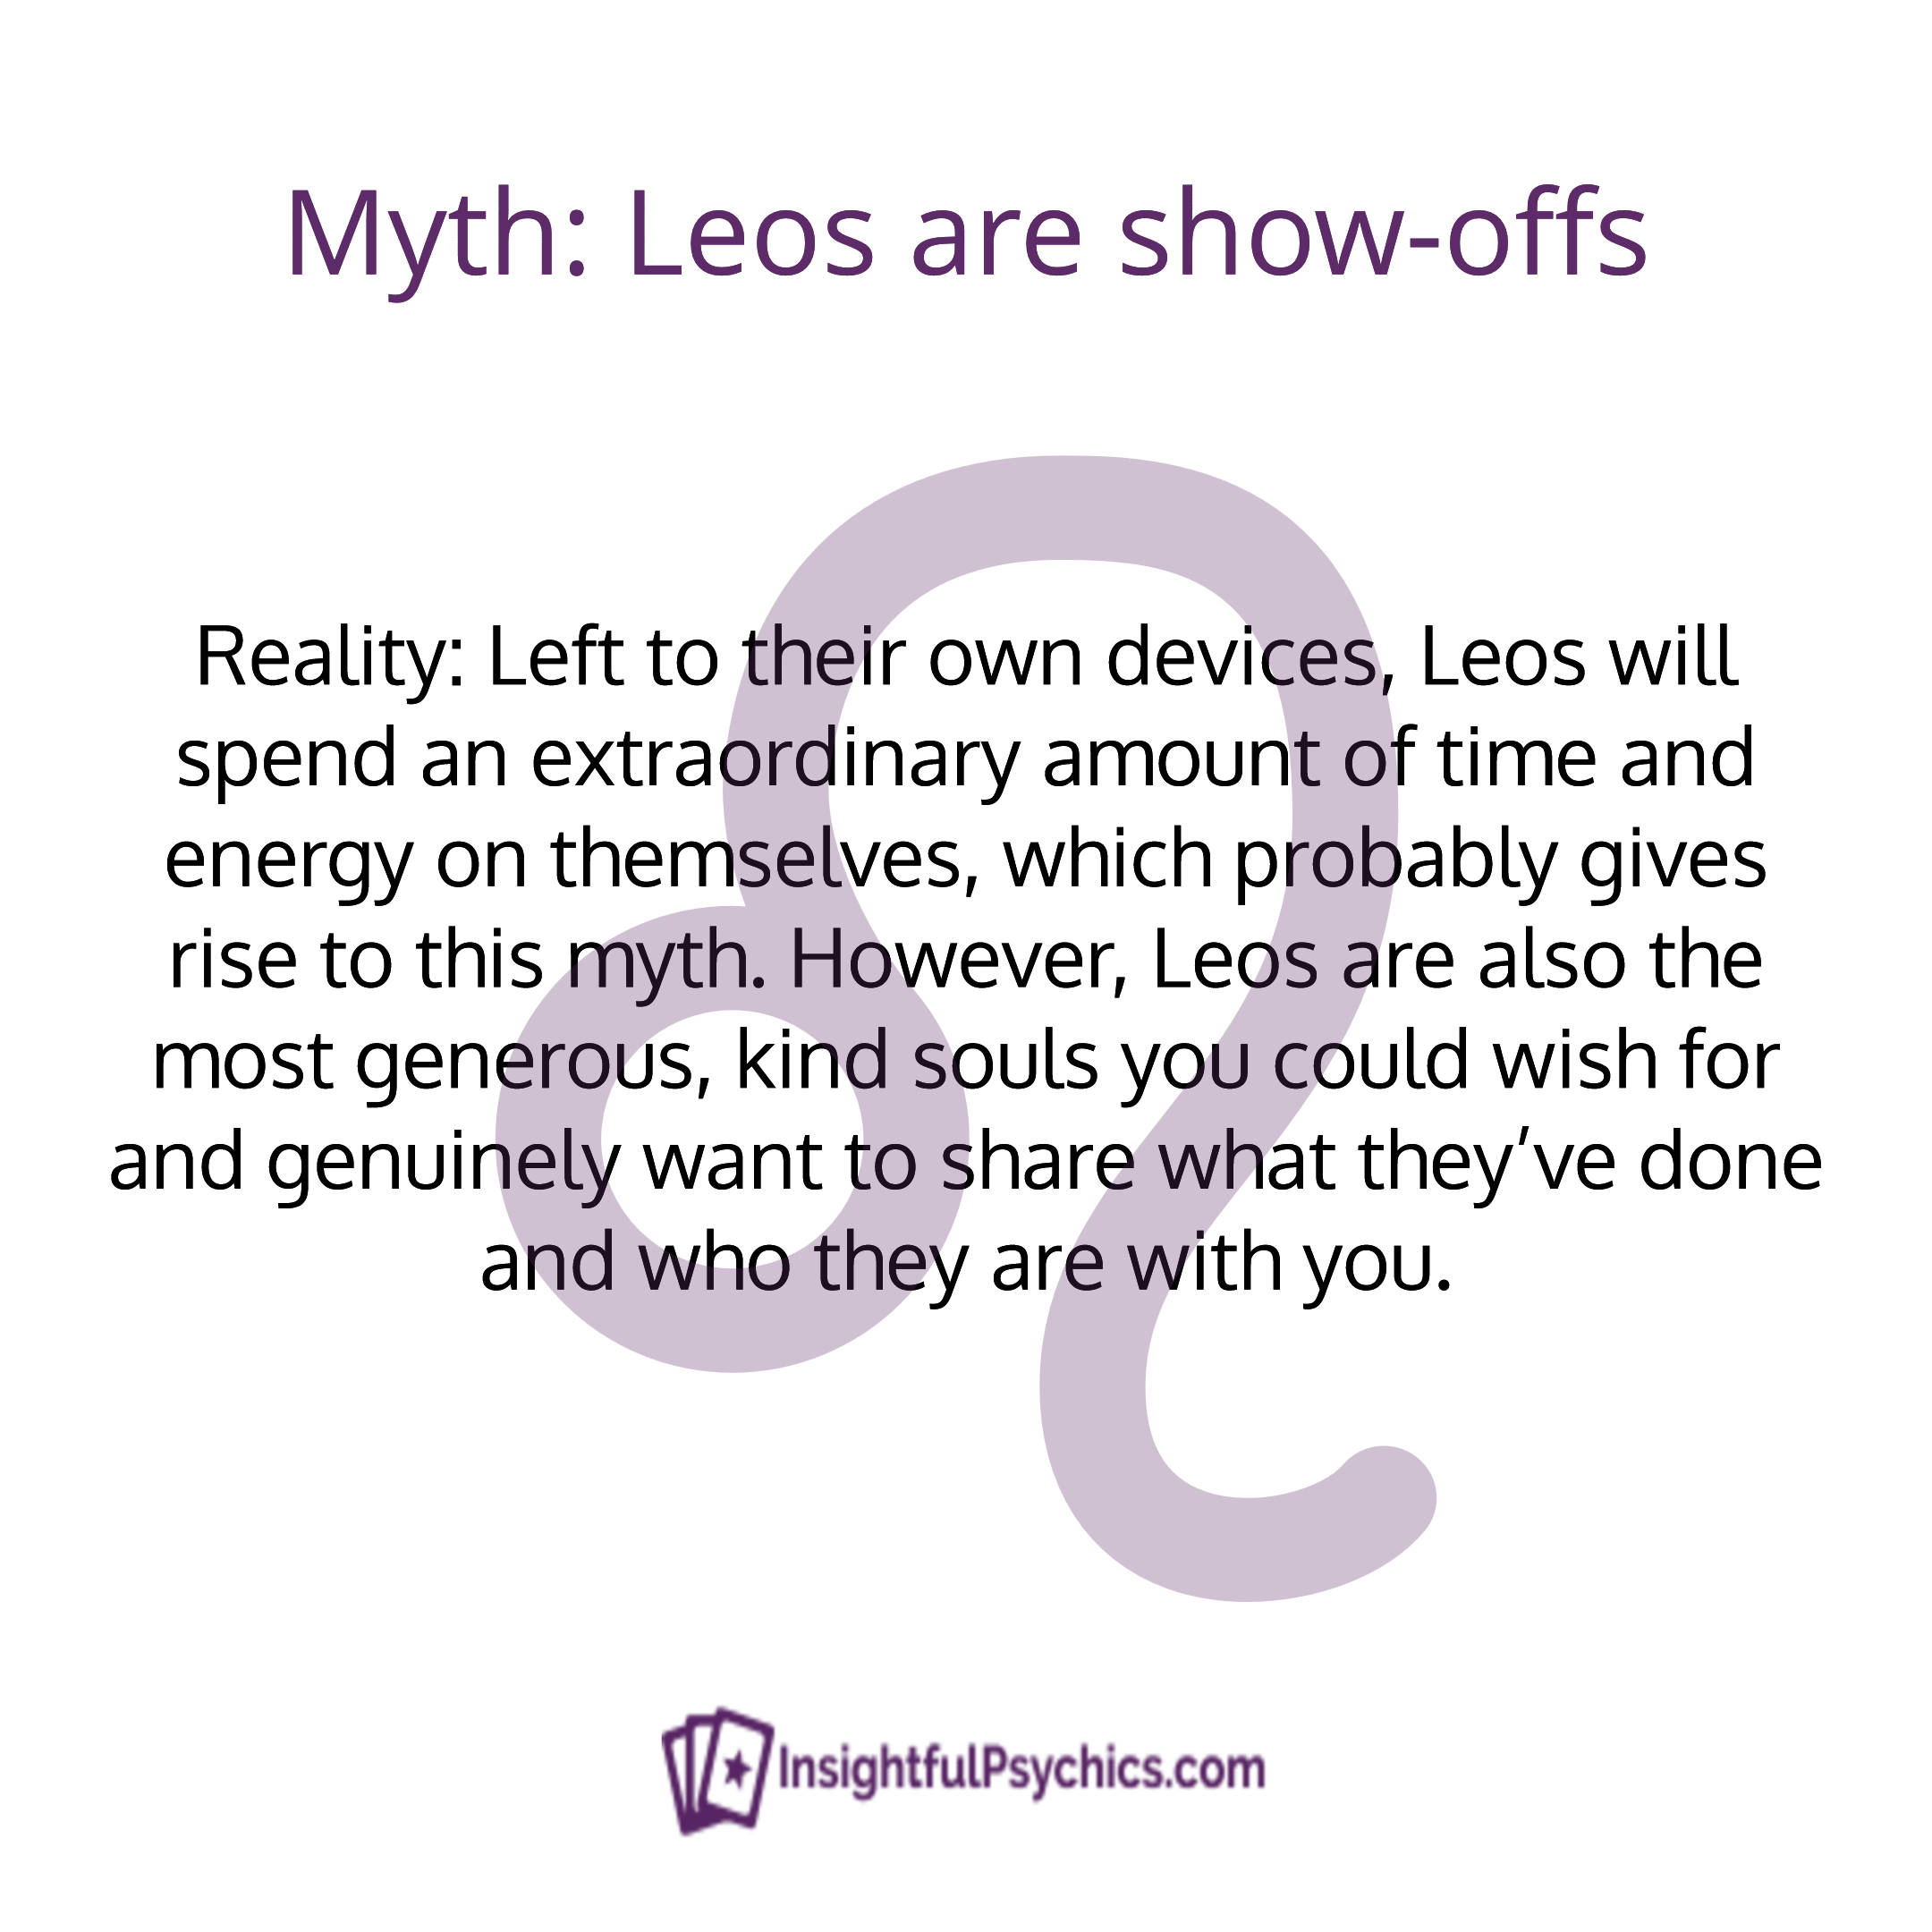 Leos are showoffs leo myth leo leomyth leosign leohoroscope leos whose symbol is the lion are born between july 23 and august learn about the characteristics career paths and compatibility of this sign buycottarizona Image collections